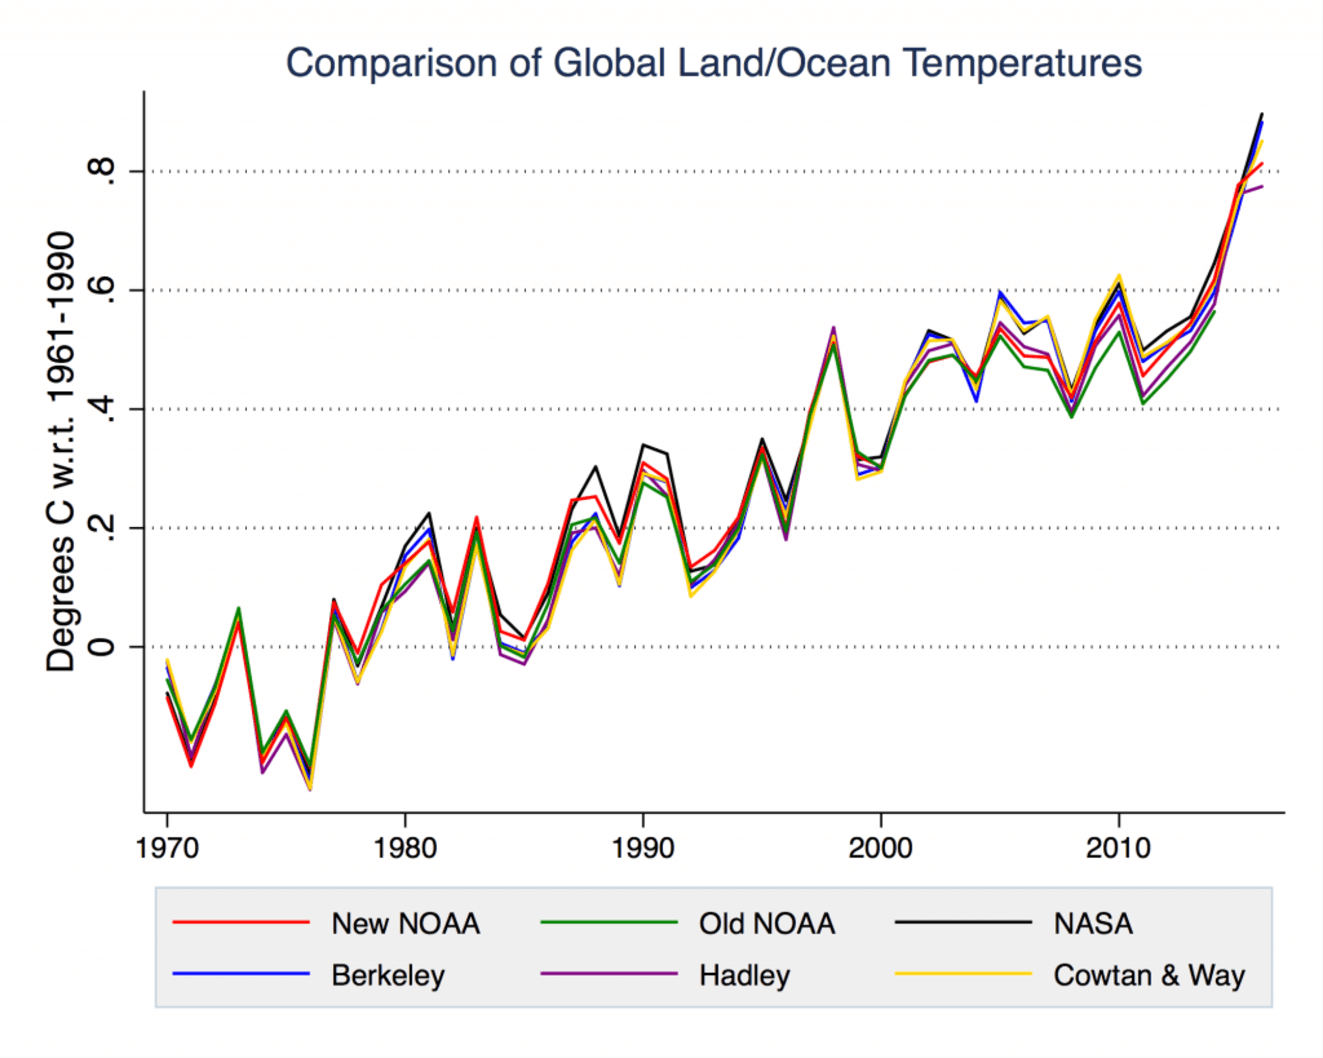 Graph comparing global temperature records from several data sources